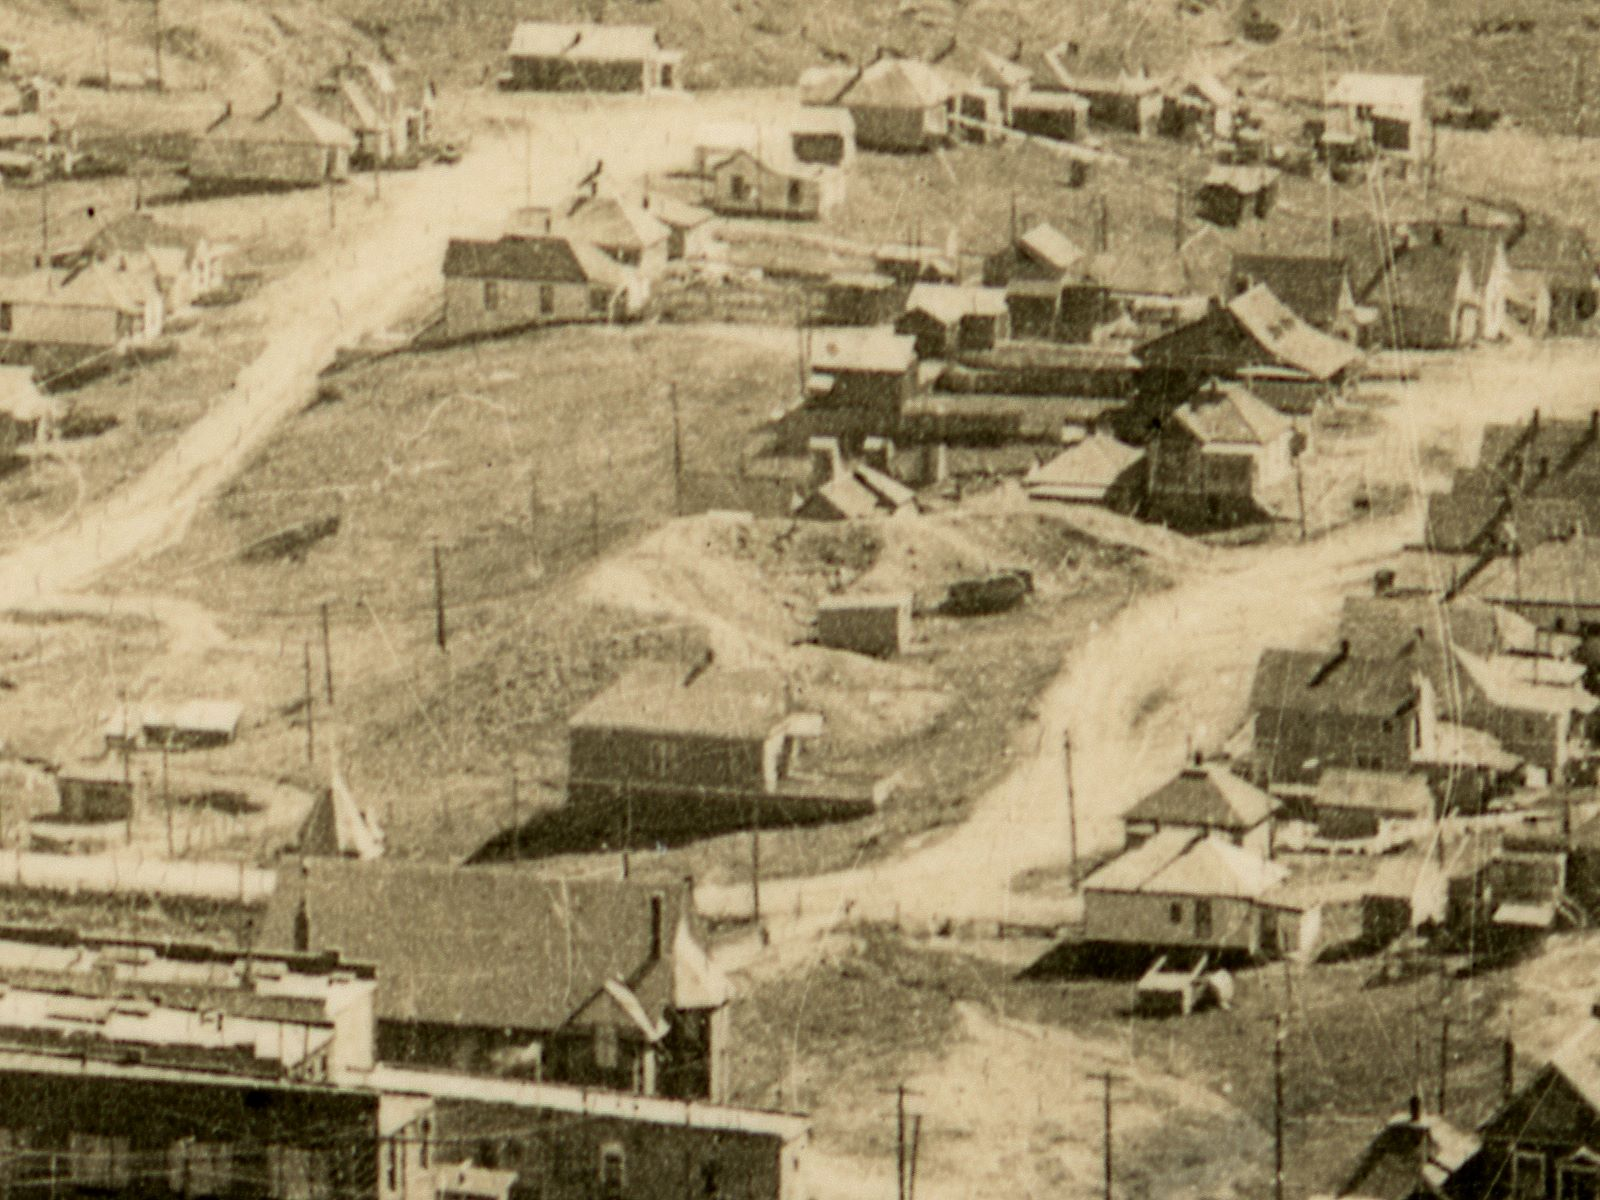 About center of this view, is the dump ground and former location of the St. Patrick mine in Victor, Colorado, located along south fourth street (on right-hand side), between the Spicer and Lee Avenues.    This view is cropped from a postcard by Bill Lehr of Victor from Battle Mountain up near the Ajax mine. Photograph date is possible late 1930's or early 1940's. The postcard has a EKC stamp box on the backside, and Google gives info that this is from the 1939-1950 timespan, and as there are still rails seen, with railroad cars, I assume M.T. is still running, making this also fit the late 1930's and very early 1940's timeframe.